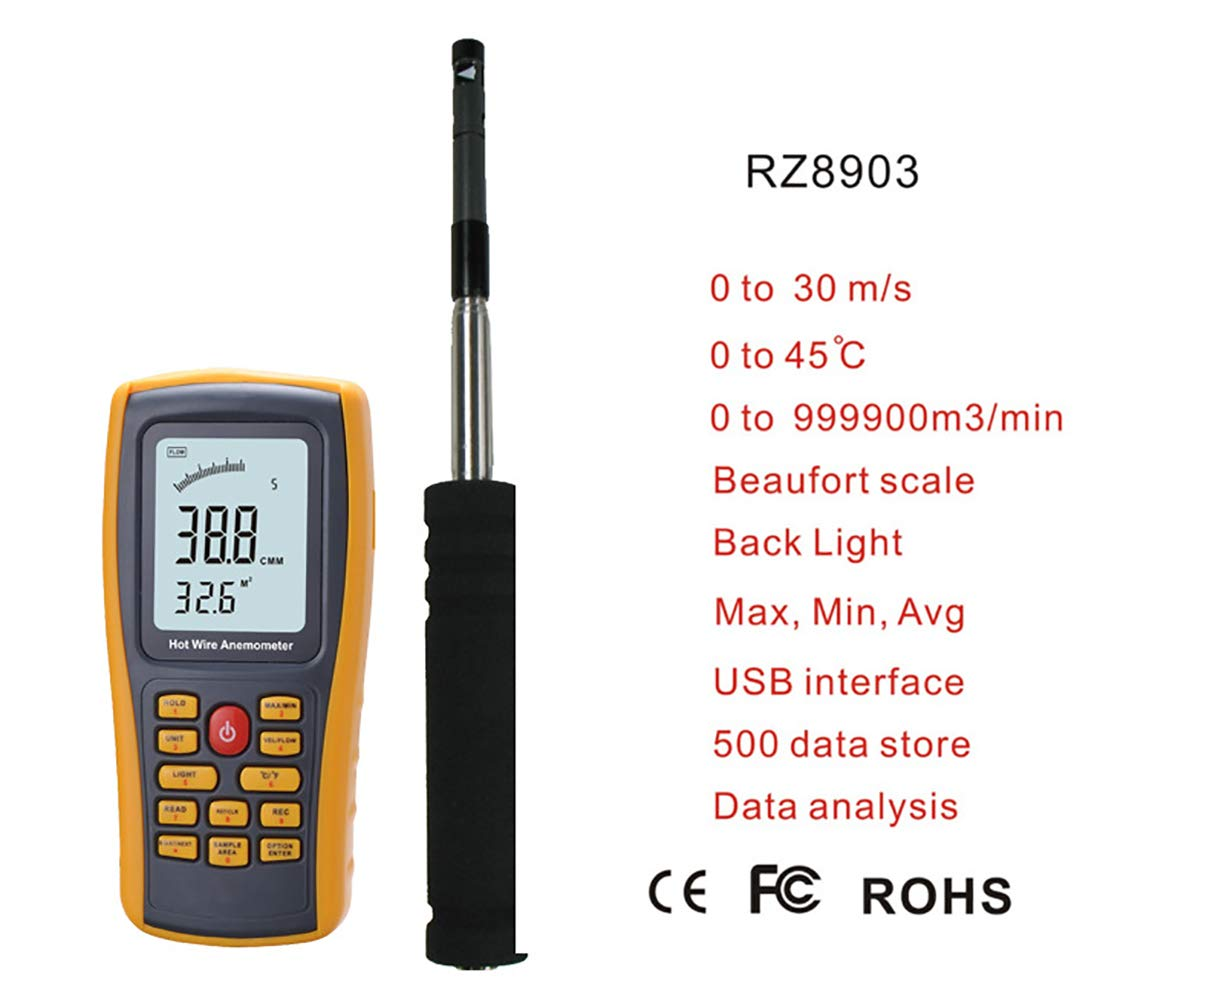 ZUZU Digital Anemometer Handheld Wind Speed Meter for Measuring Wind Speed, Temperature and Wind Chill with Backlight and Max/Min